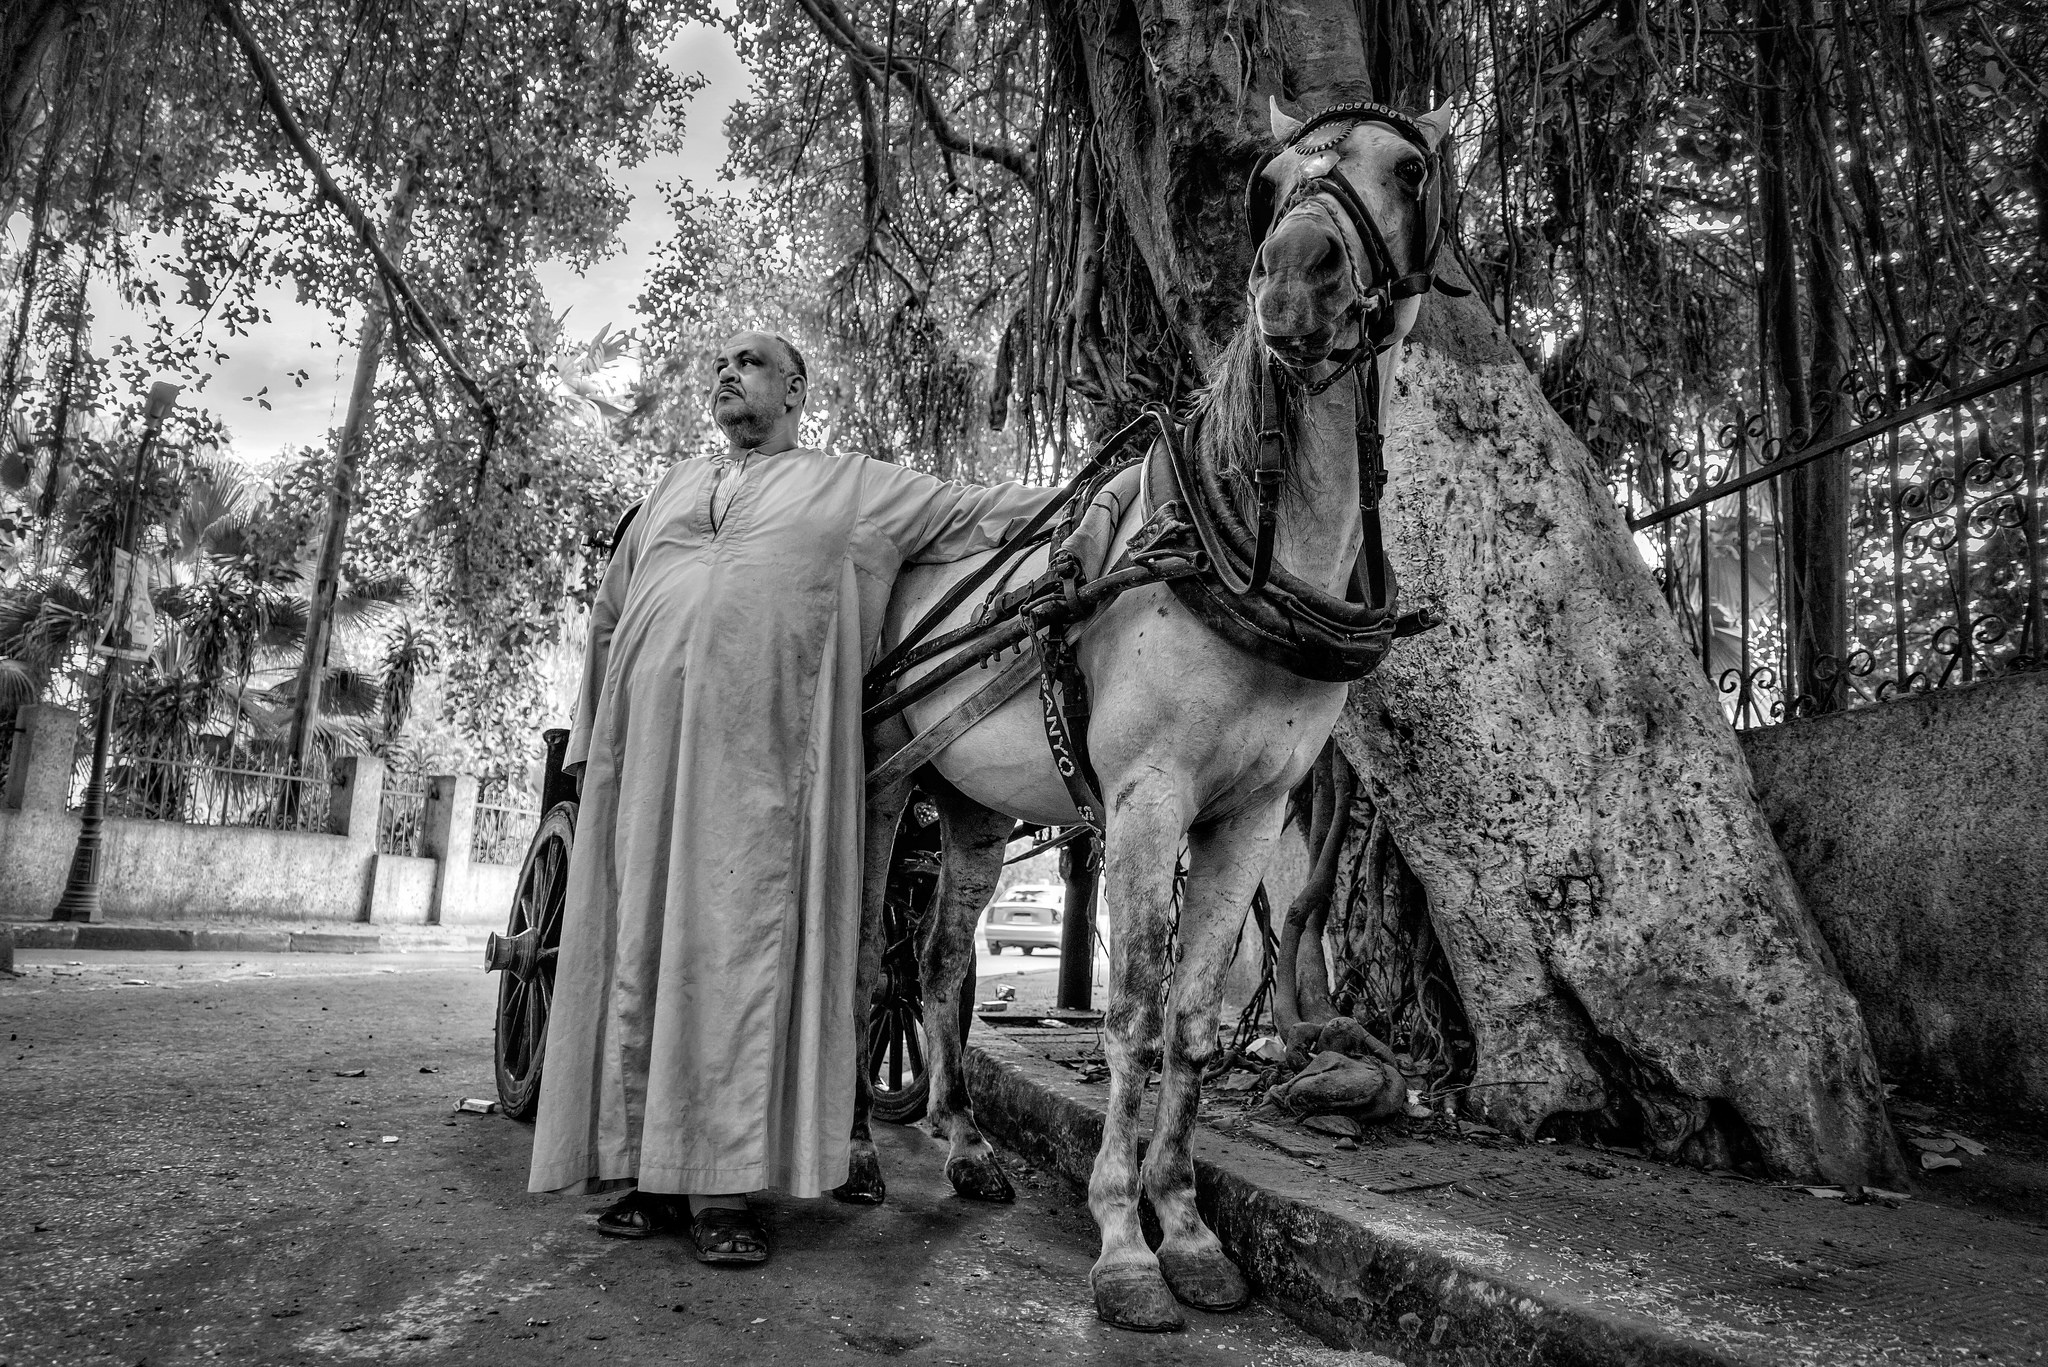 The horse and the coachman. Cairo, Egypt.